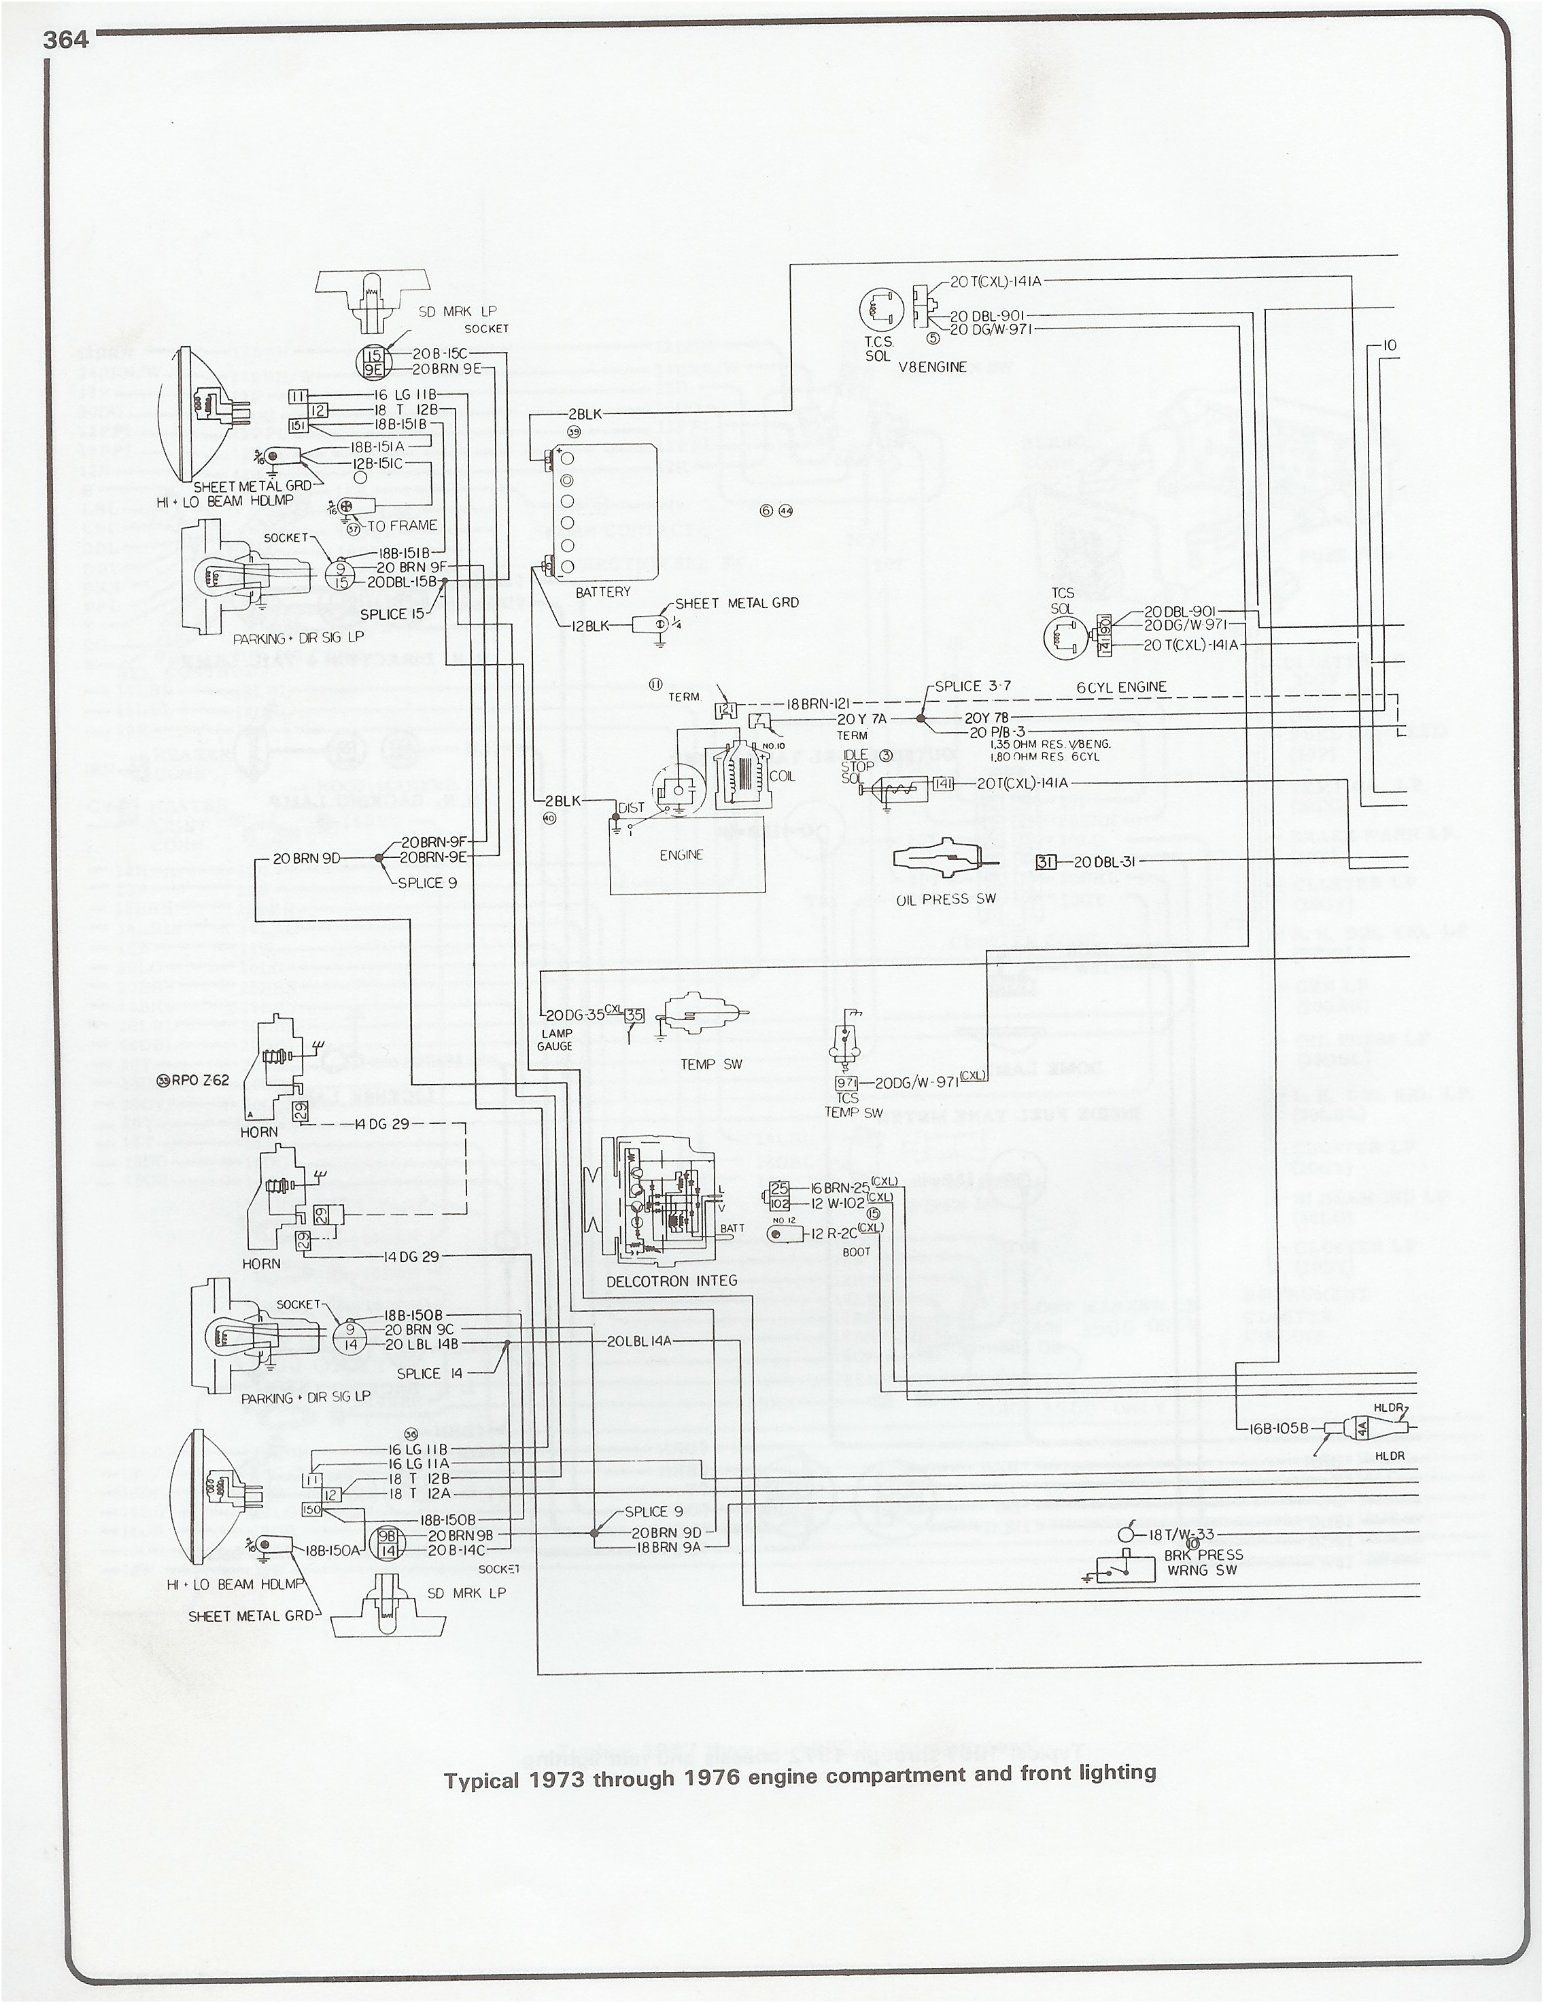 wiring diagram 1973 1976 chevy pickup chevy wiring diagram diagrams wiring chevy79k10 76 chevy wiring diagram [ 1544 x 2003 Pixel ]